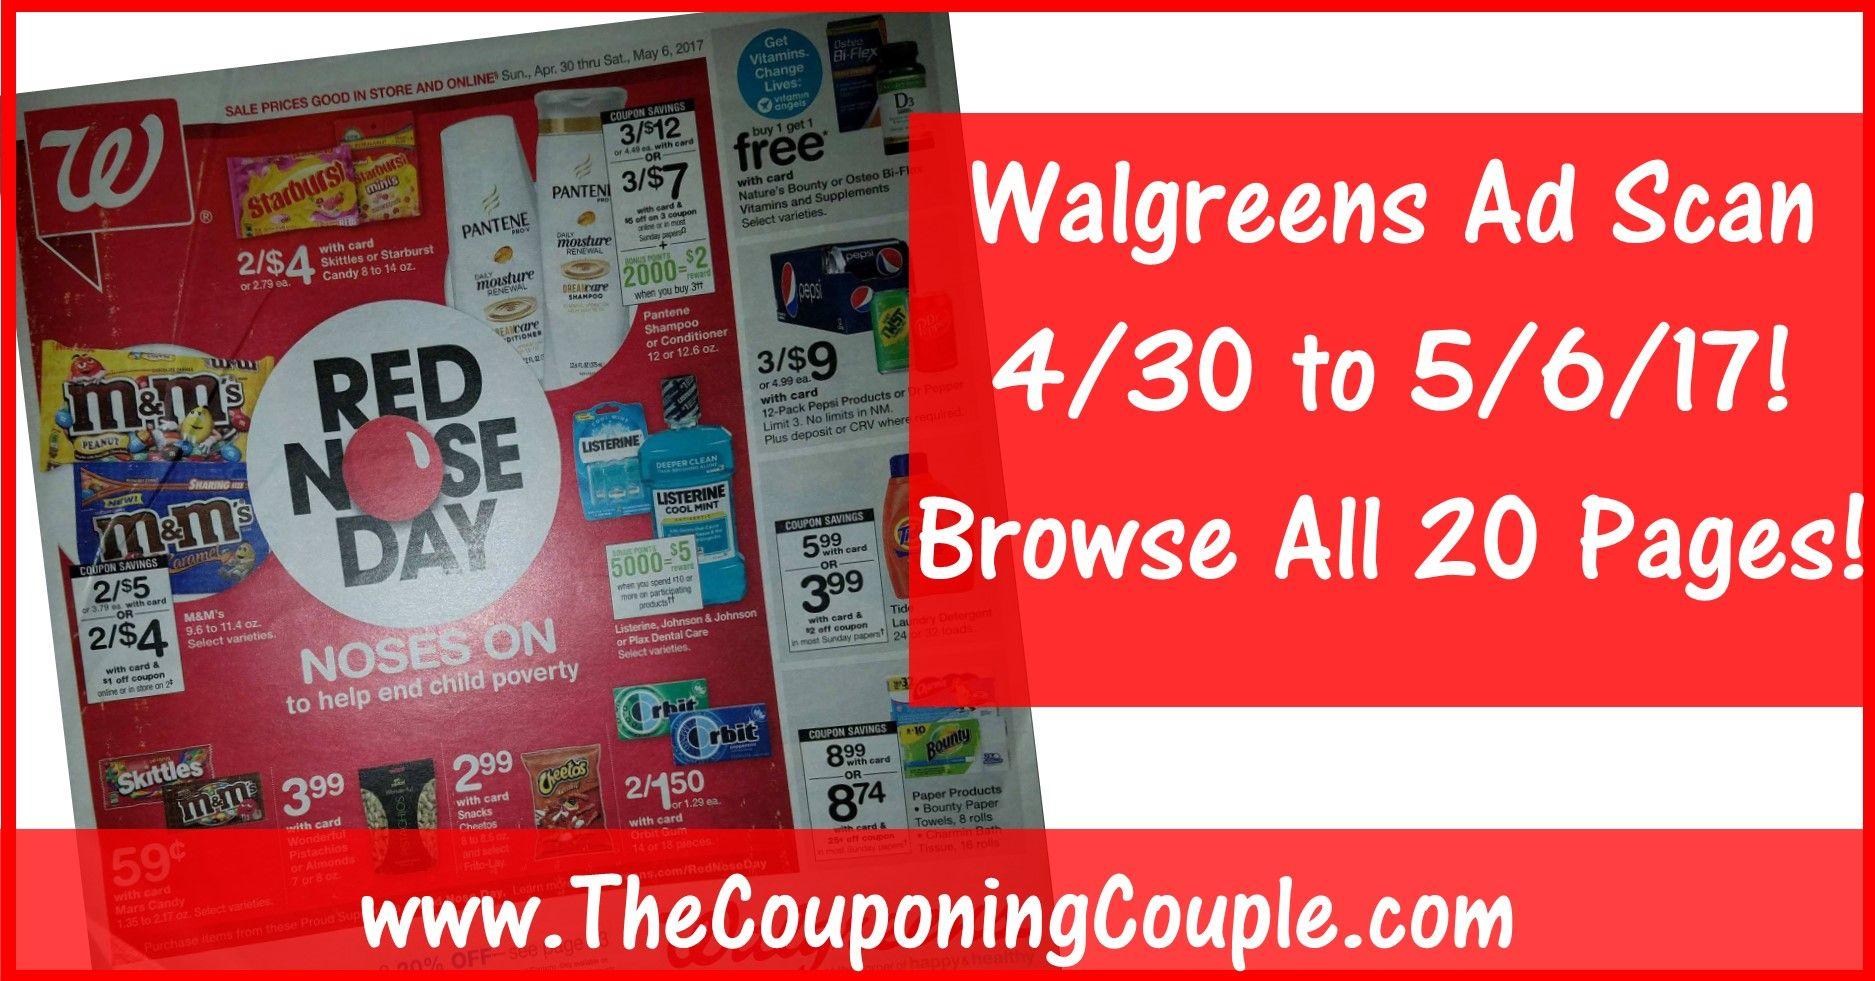 Walgreens Ad Scan for 4-30 to 5-6-17 ~ BROWSE All 20 Pages